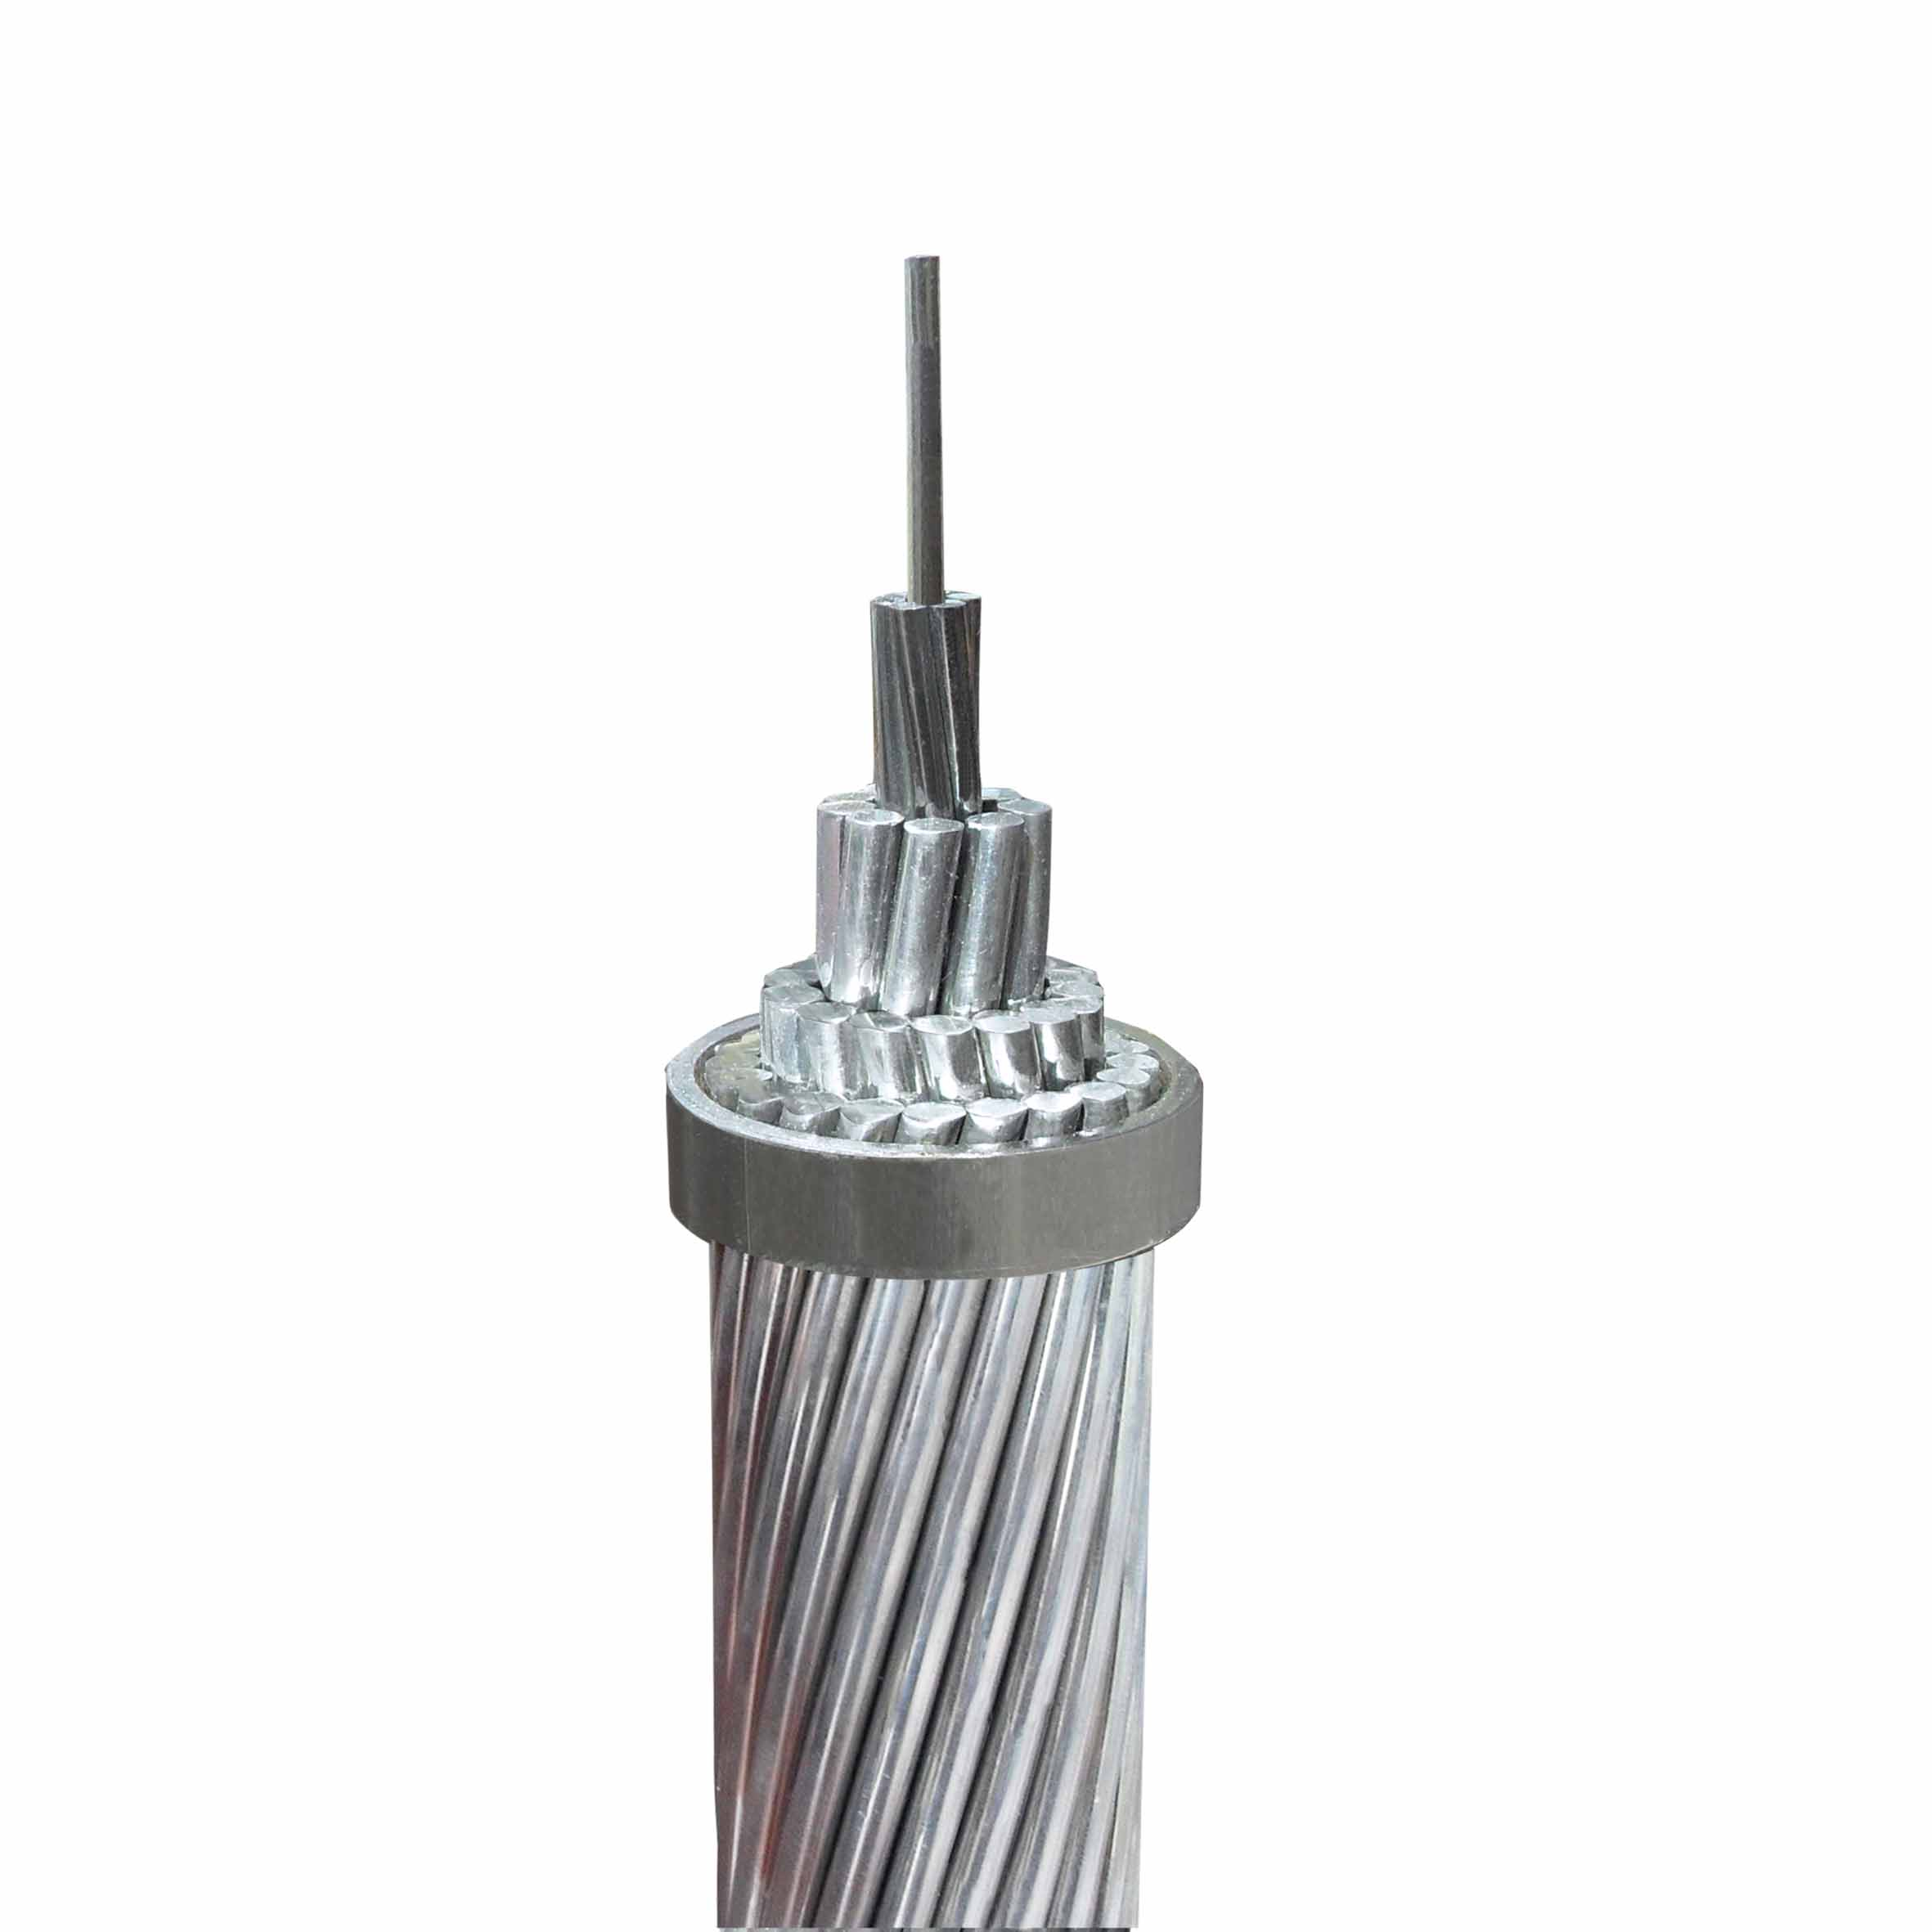 HV high voltage overhead/aerial bare conductor ACSR/AAC/AAAC with IEC ASTM standards